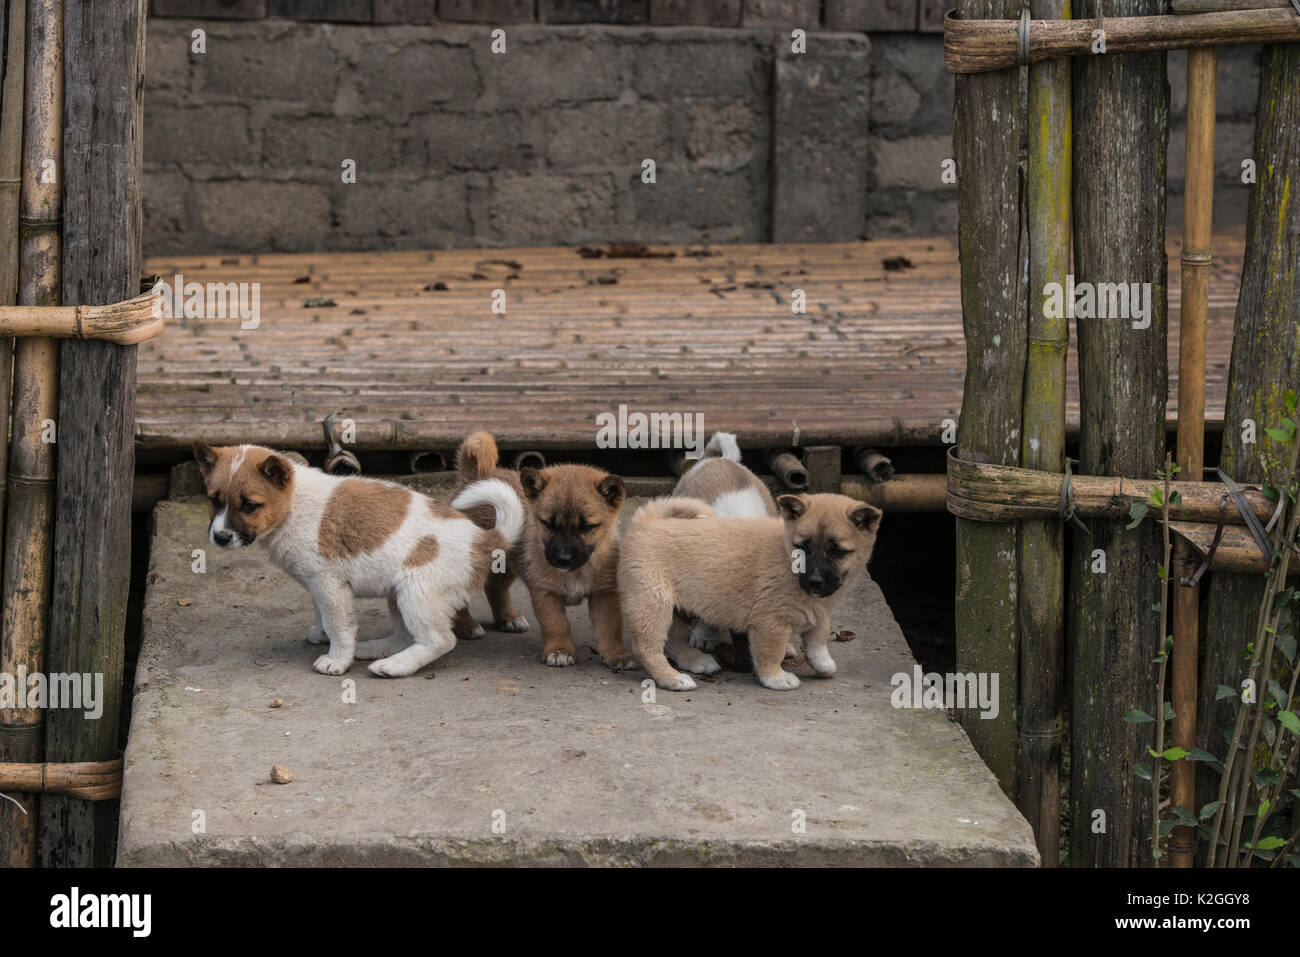 Puppies outside house, these animals are kept as pets but also sometime eaten in the Apatani Tribe. Ziro Valley, Himalayan Foothills, Arunachal Pradesh, North East India, November 2014. - Stock Image